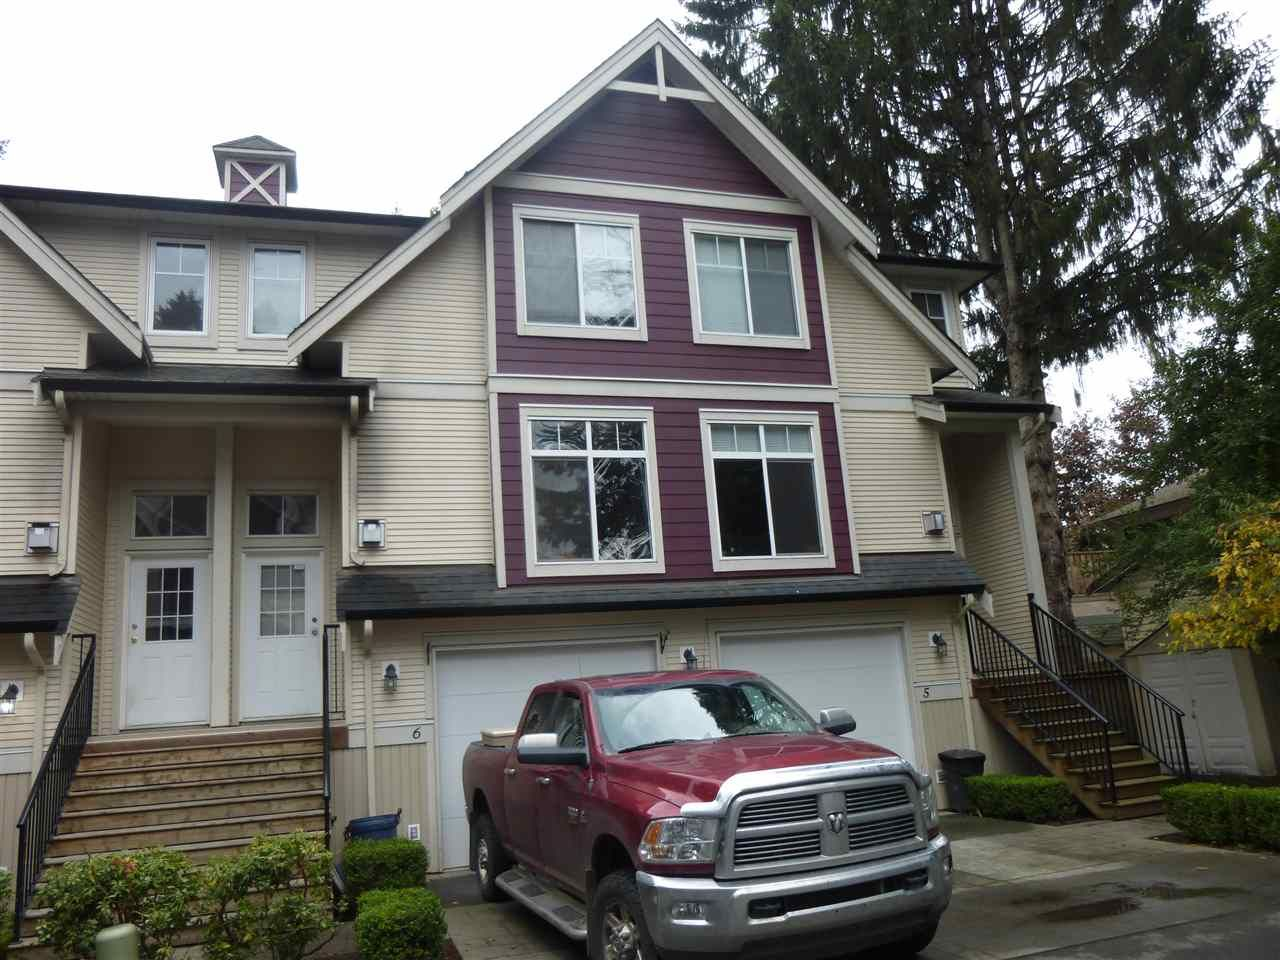 """Main Photo: 6 46608 YALE Road in Chilliwack: Chilliwack E Young-Yale Townhouse for sale in """"THORNBERRY LANE"""" : MLS®# R2114763"""